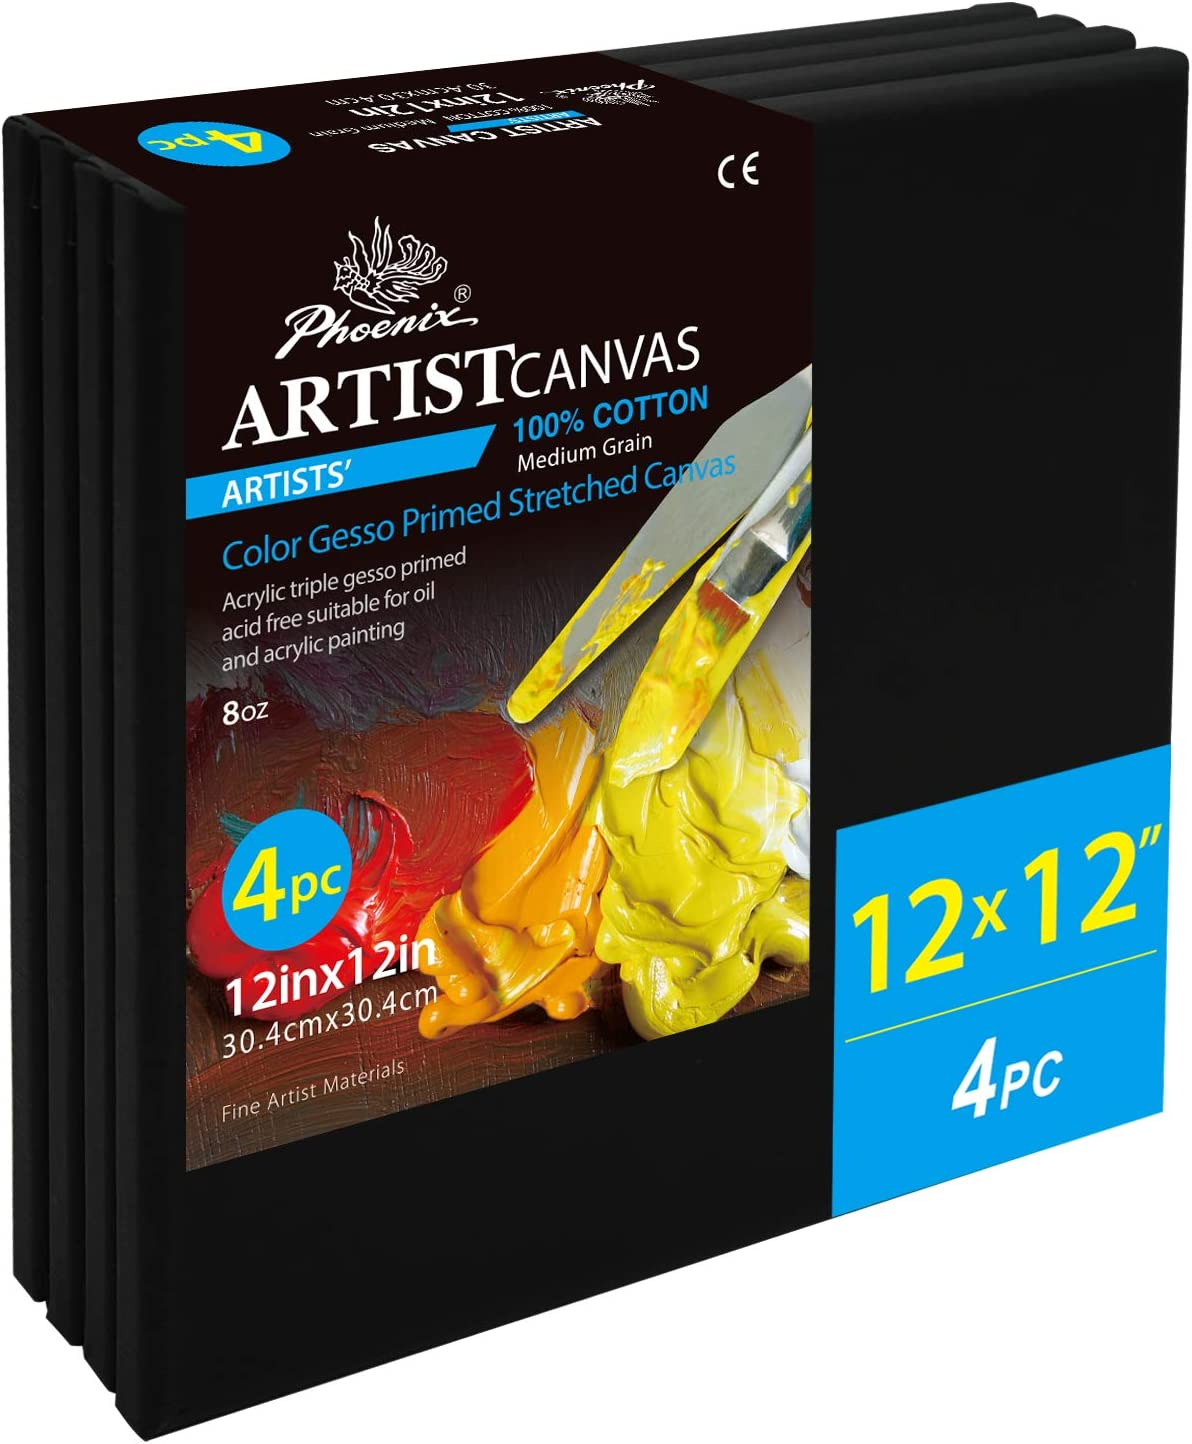 Collages 3//4 Inch Profile Artist Canvas for Oil /& Acrylic Paint 10x10 Inch//4 Pack Advertising Poster /& Decorating Projects PHOENIX Black Painting Stretched Canvas